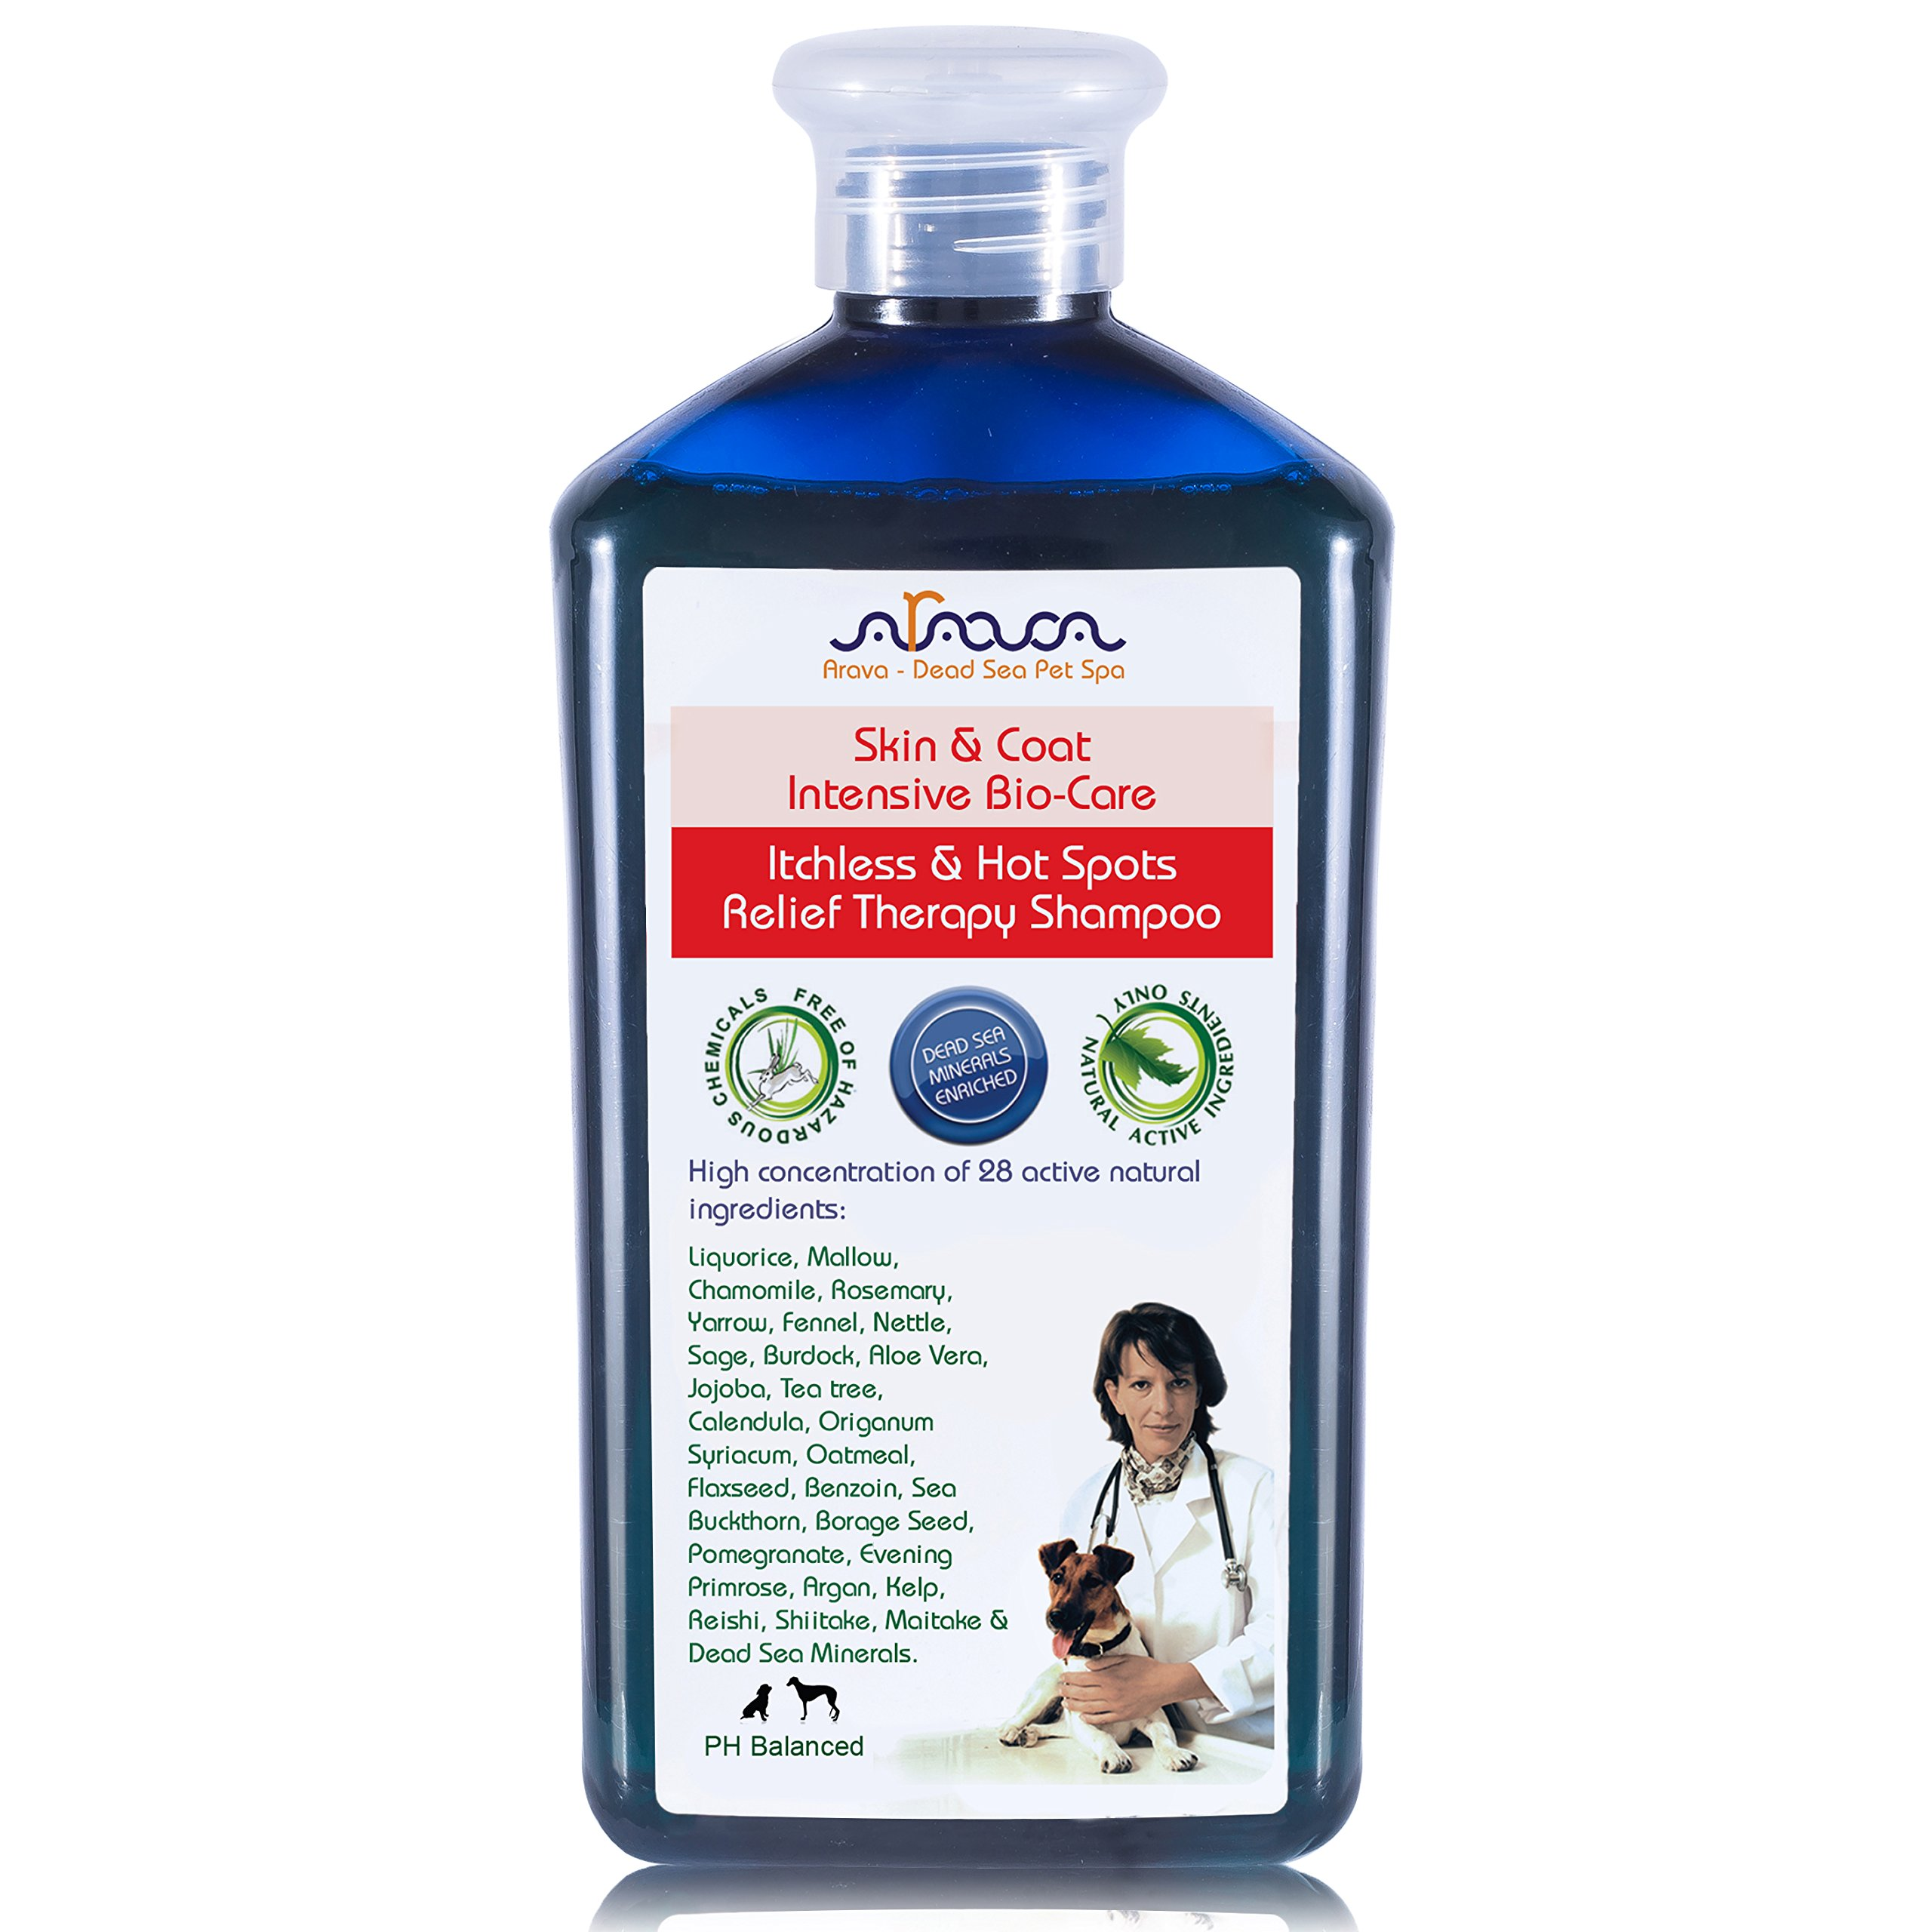 Arava Natural Medicated Dog Shampoo – Antibacterial Antifungal Anti Yeast Anti ITCH Dog Shampoo - Healthy Skin & Coat - First Aid in Hot Spots Ringworm Scrapes Abrasions & Dermatologic Infections